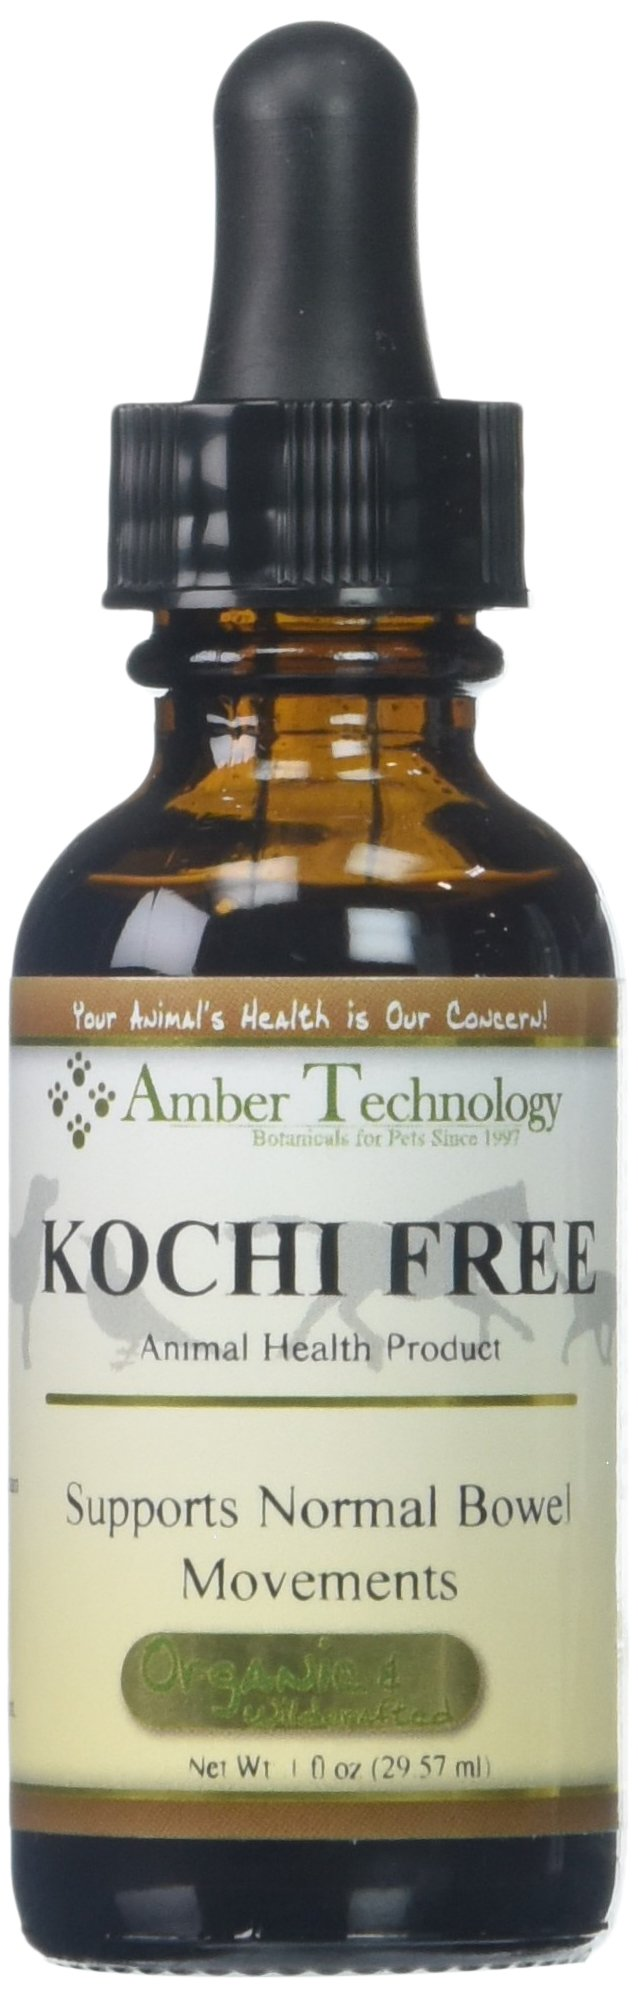 Amber Technology Kochi Free, 1 oz